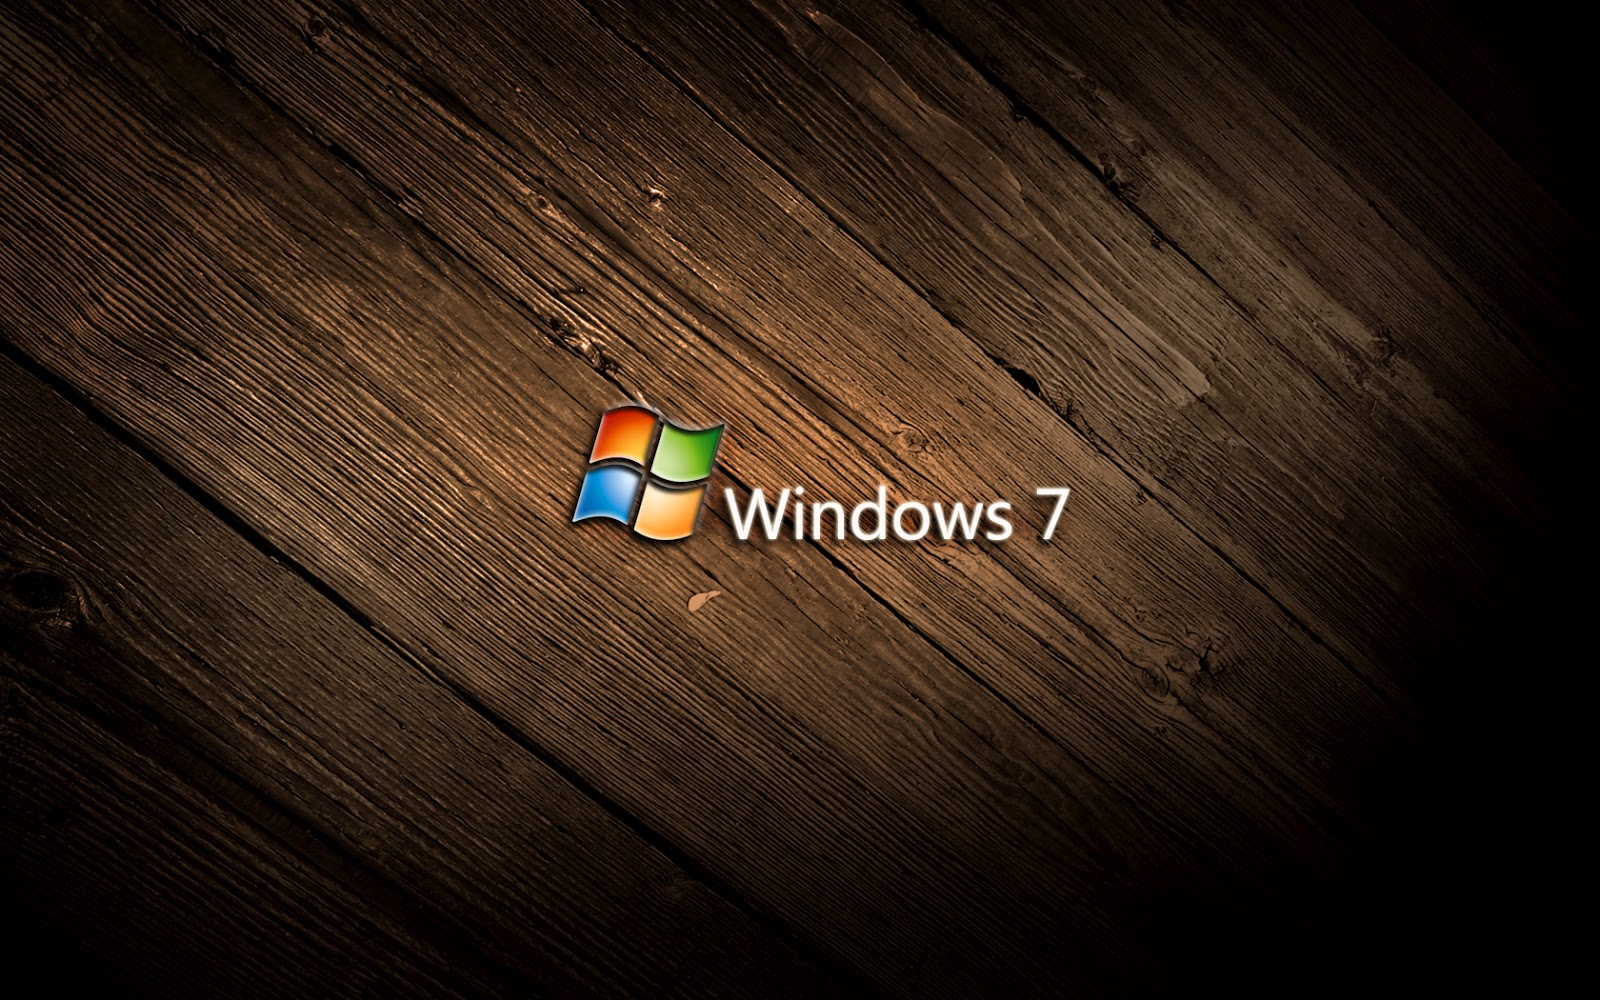 Windows 7 HD Wallpapers - A